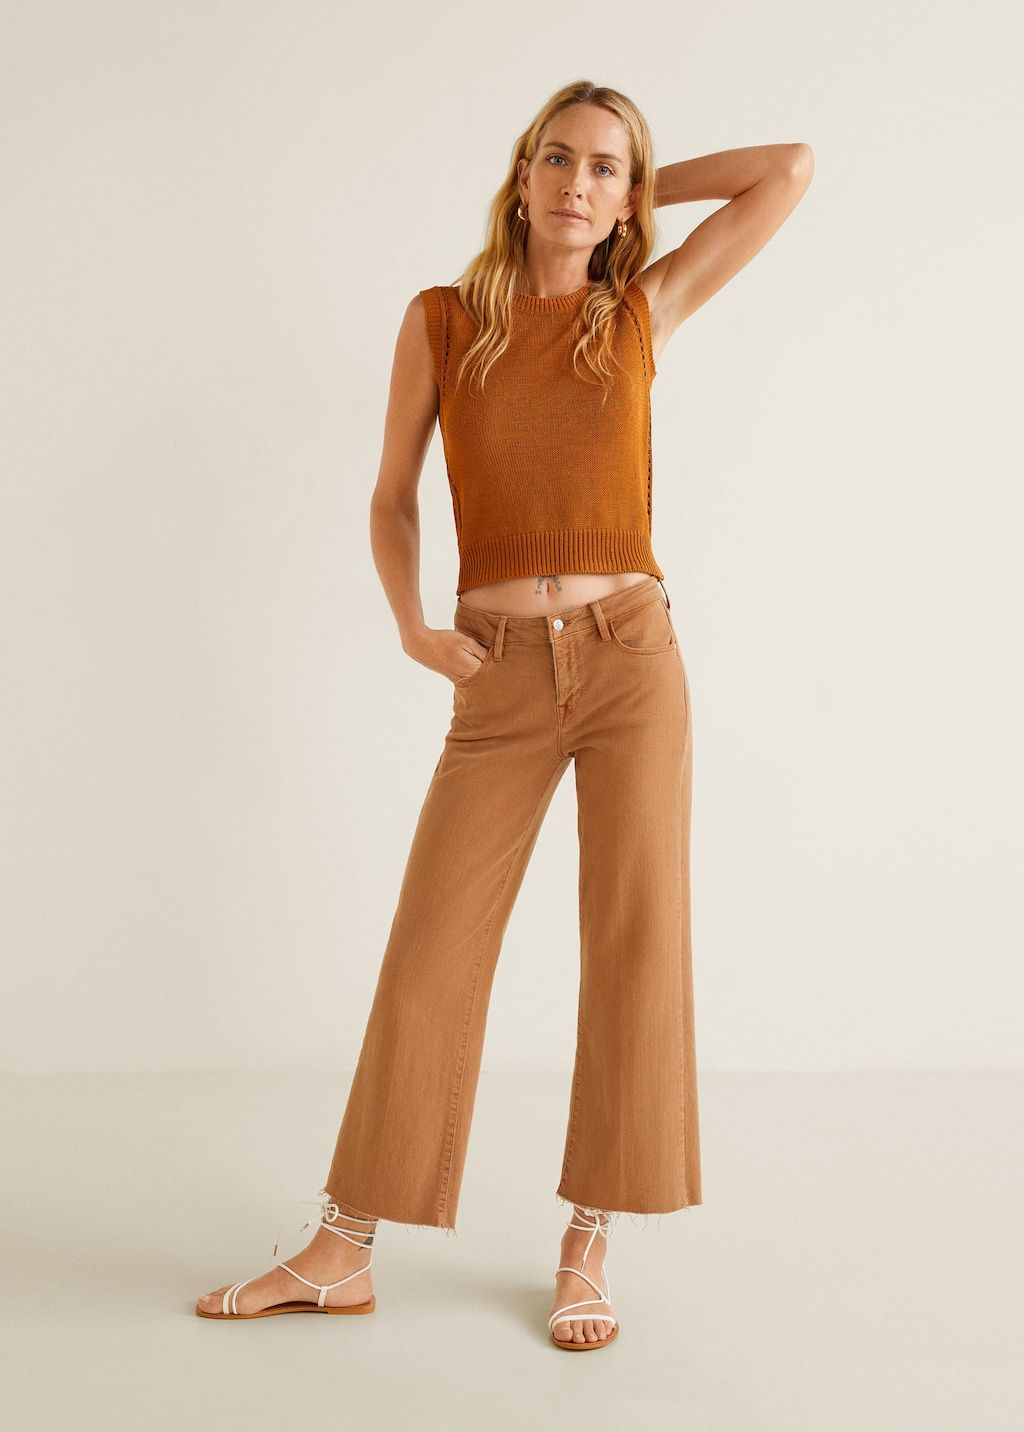 Jeans-trends-mango